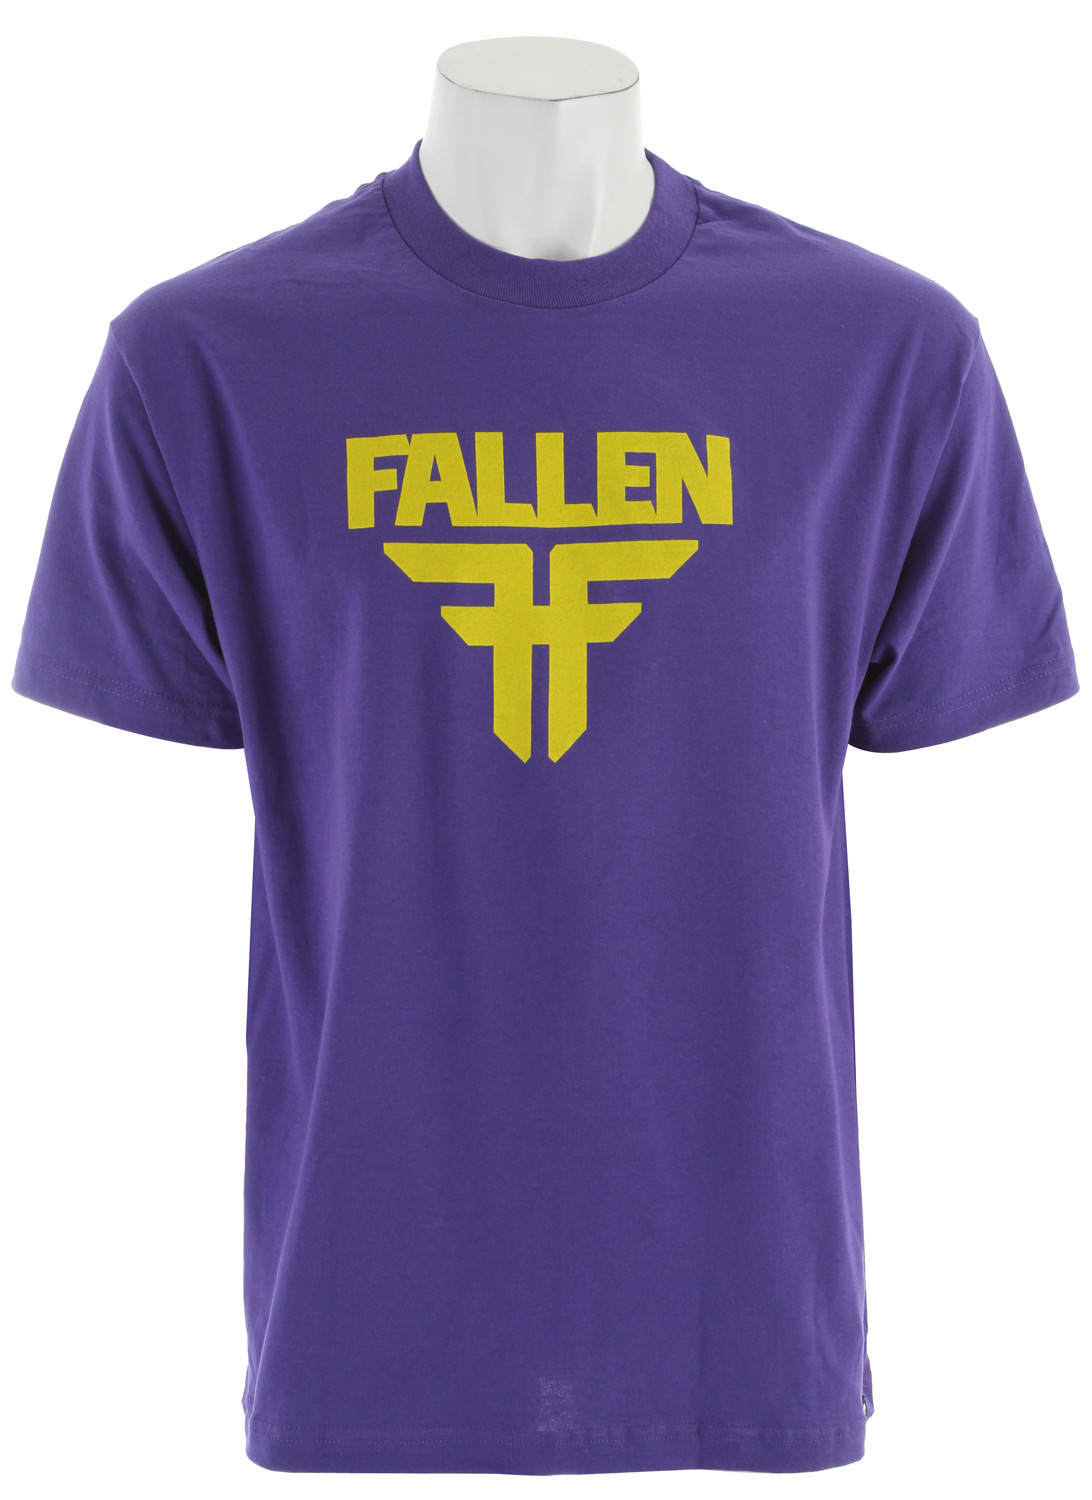 Entertainment Key Features of The Fallen Insignia T-Shirt: Regular Fit Crew Neck Short Sleeve - $14.95